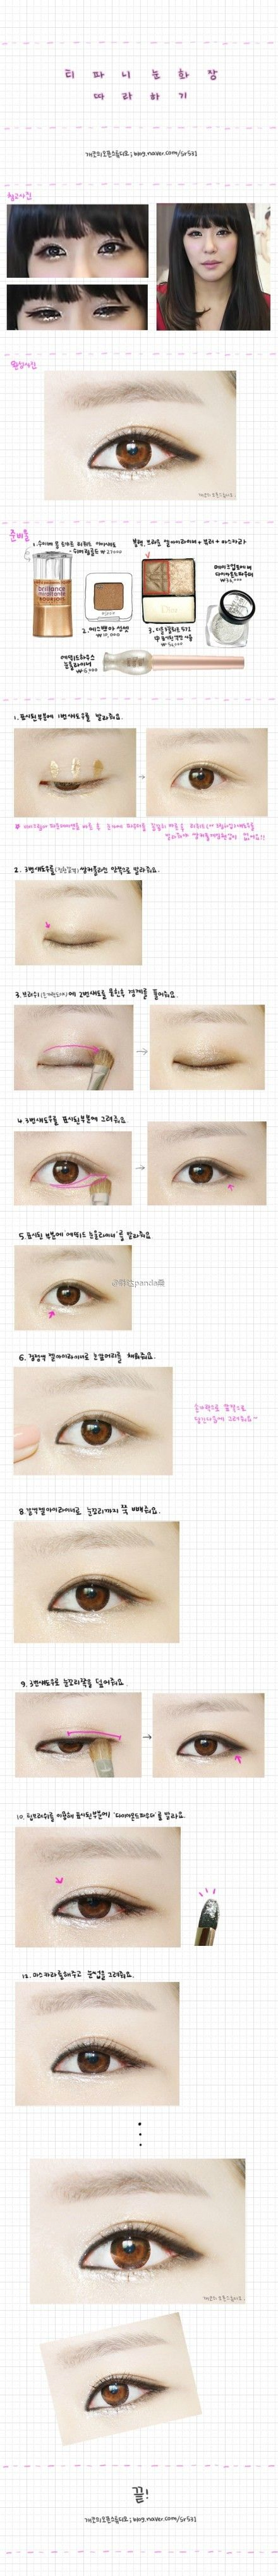 Tiffany of SNSD/Girls' Generation makeup tutorial